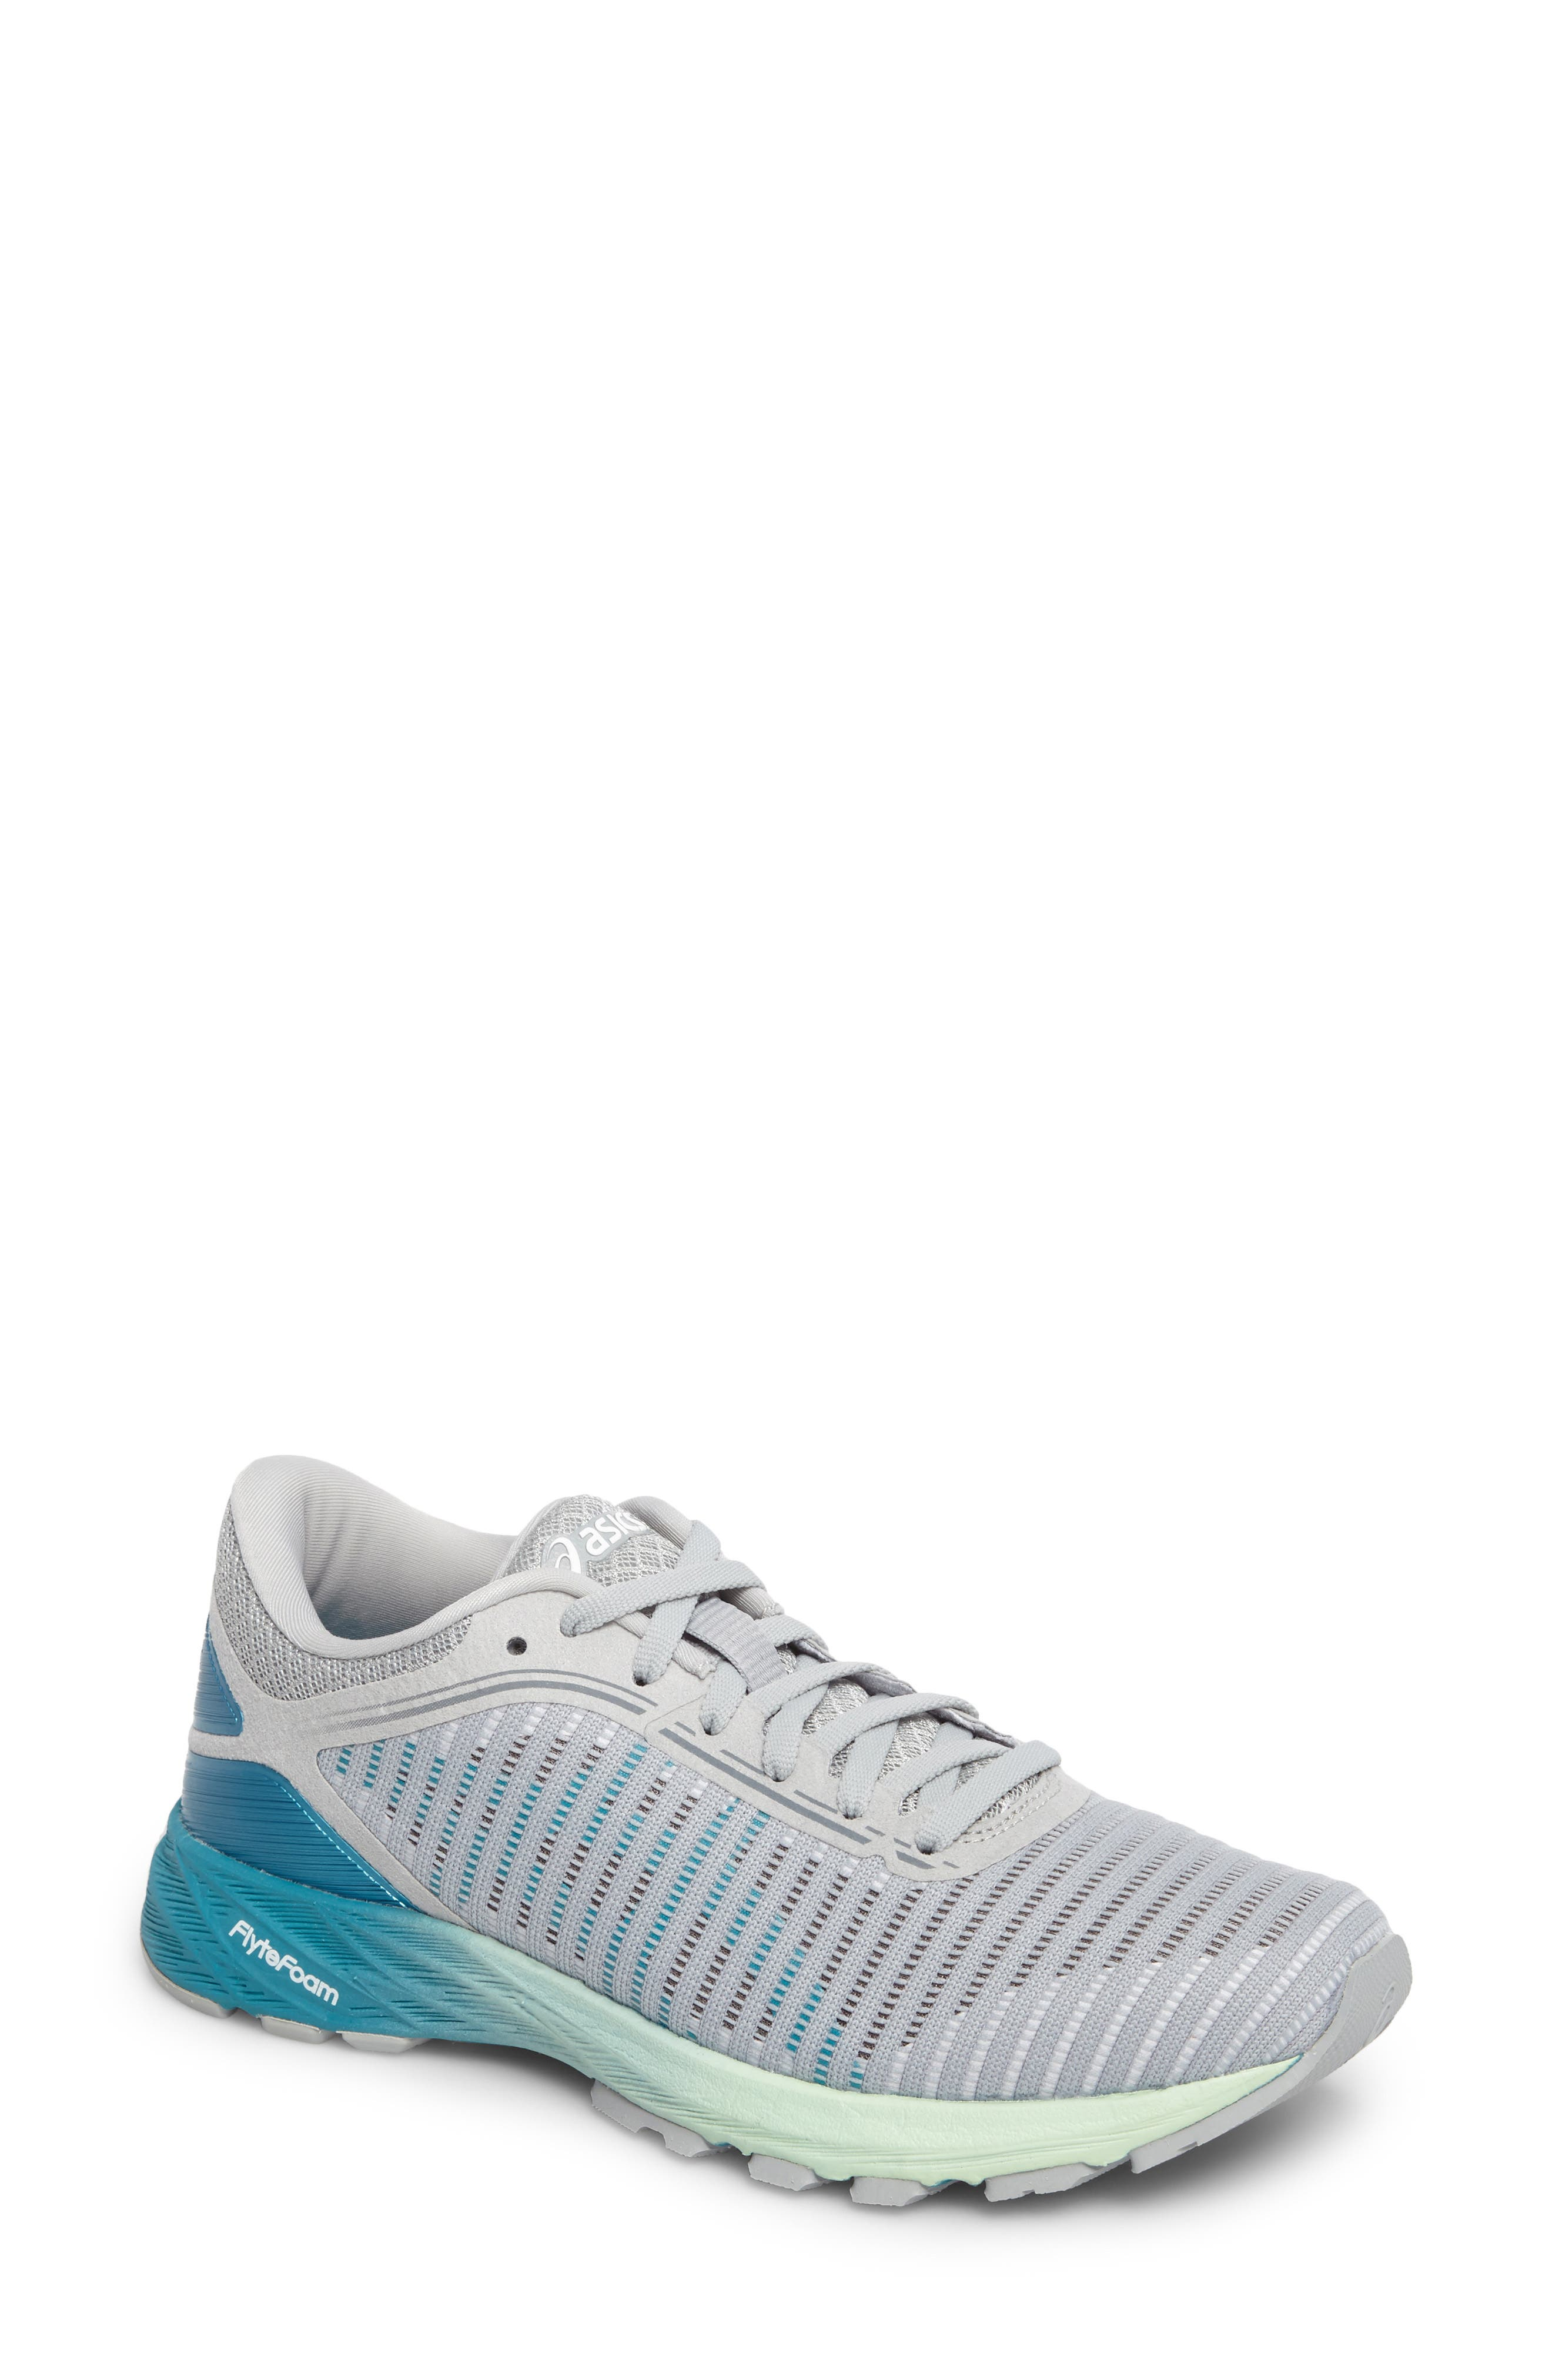 DynaFlyte 2 Running Shoe,                         Main,                         color, MID GREY/ AQUA/ GLACIER